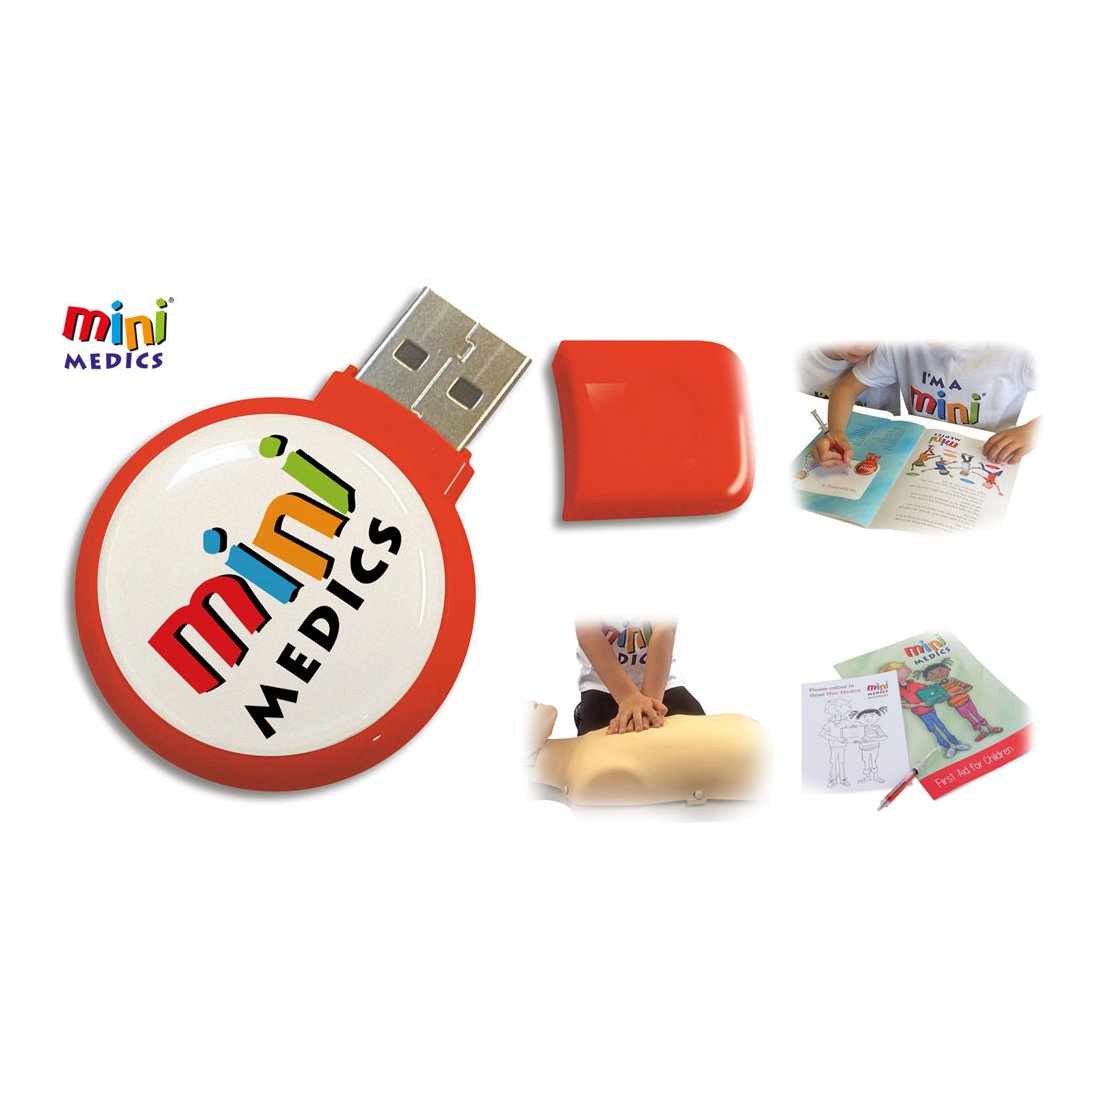 Mini Medics USBB Training Pack with 32 Books & Pencil Set Ref CM1182 Up to 7-10 Day Leadtime